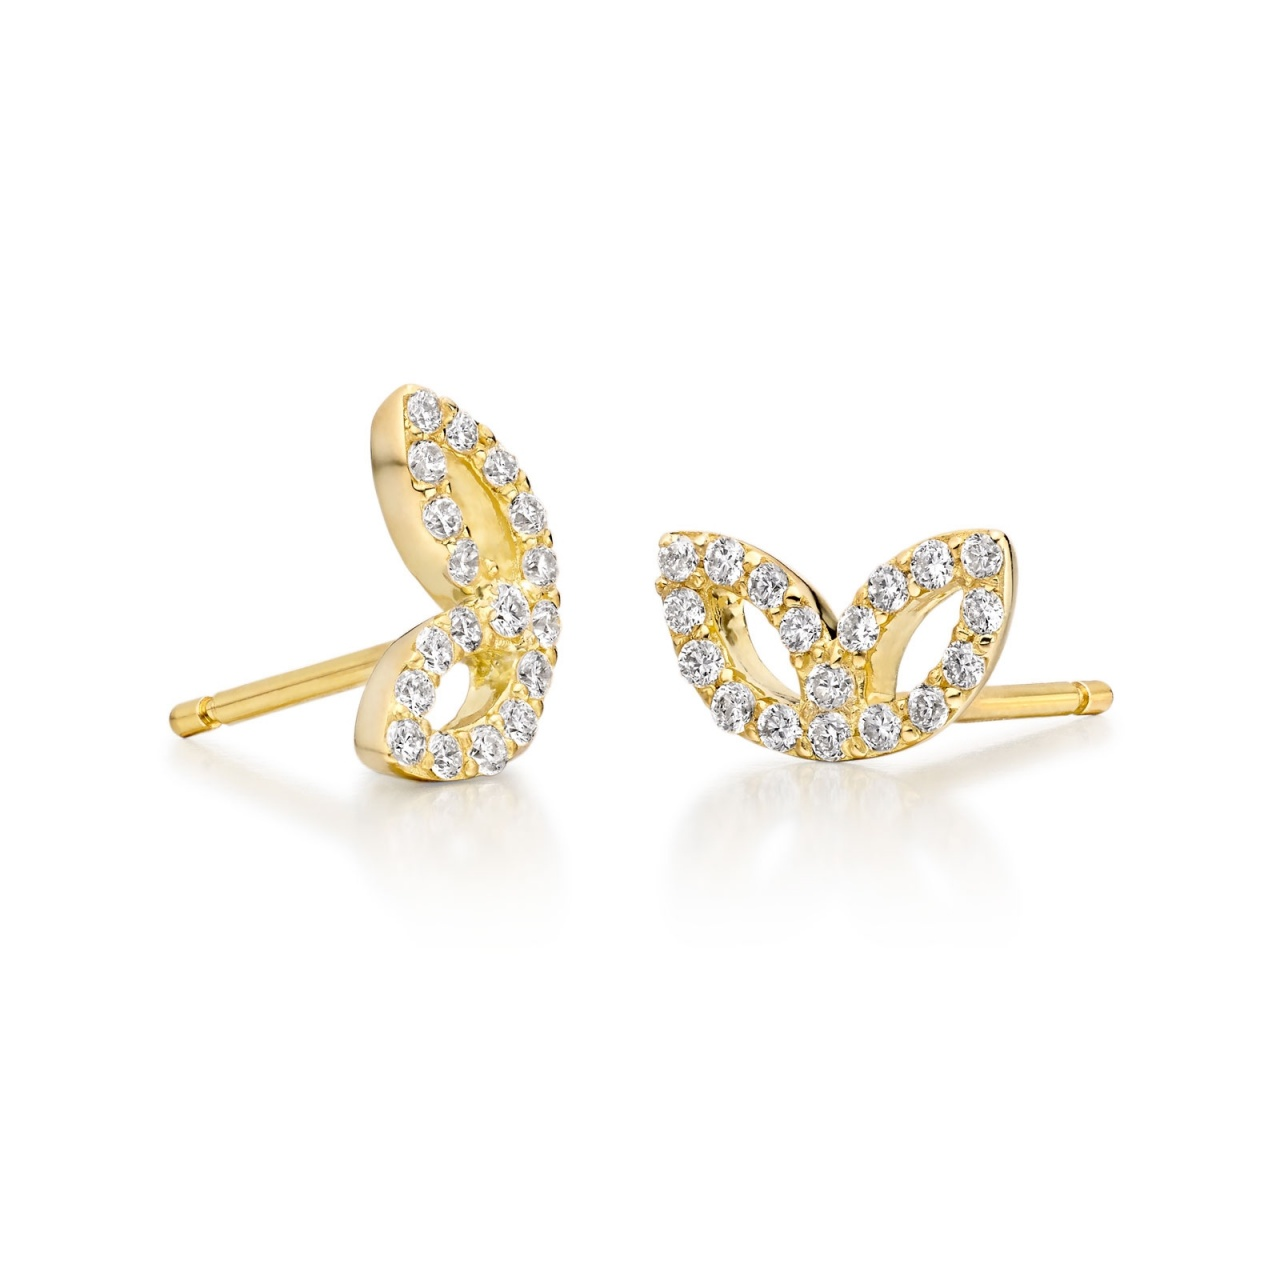 Enchanted Diamond Stud Earrings in Yellow Gold-EADIYG0464-1